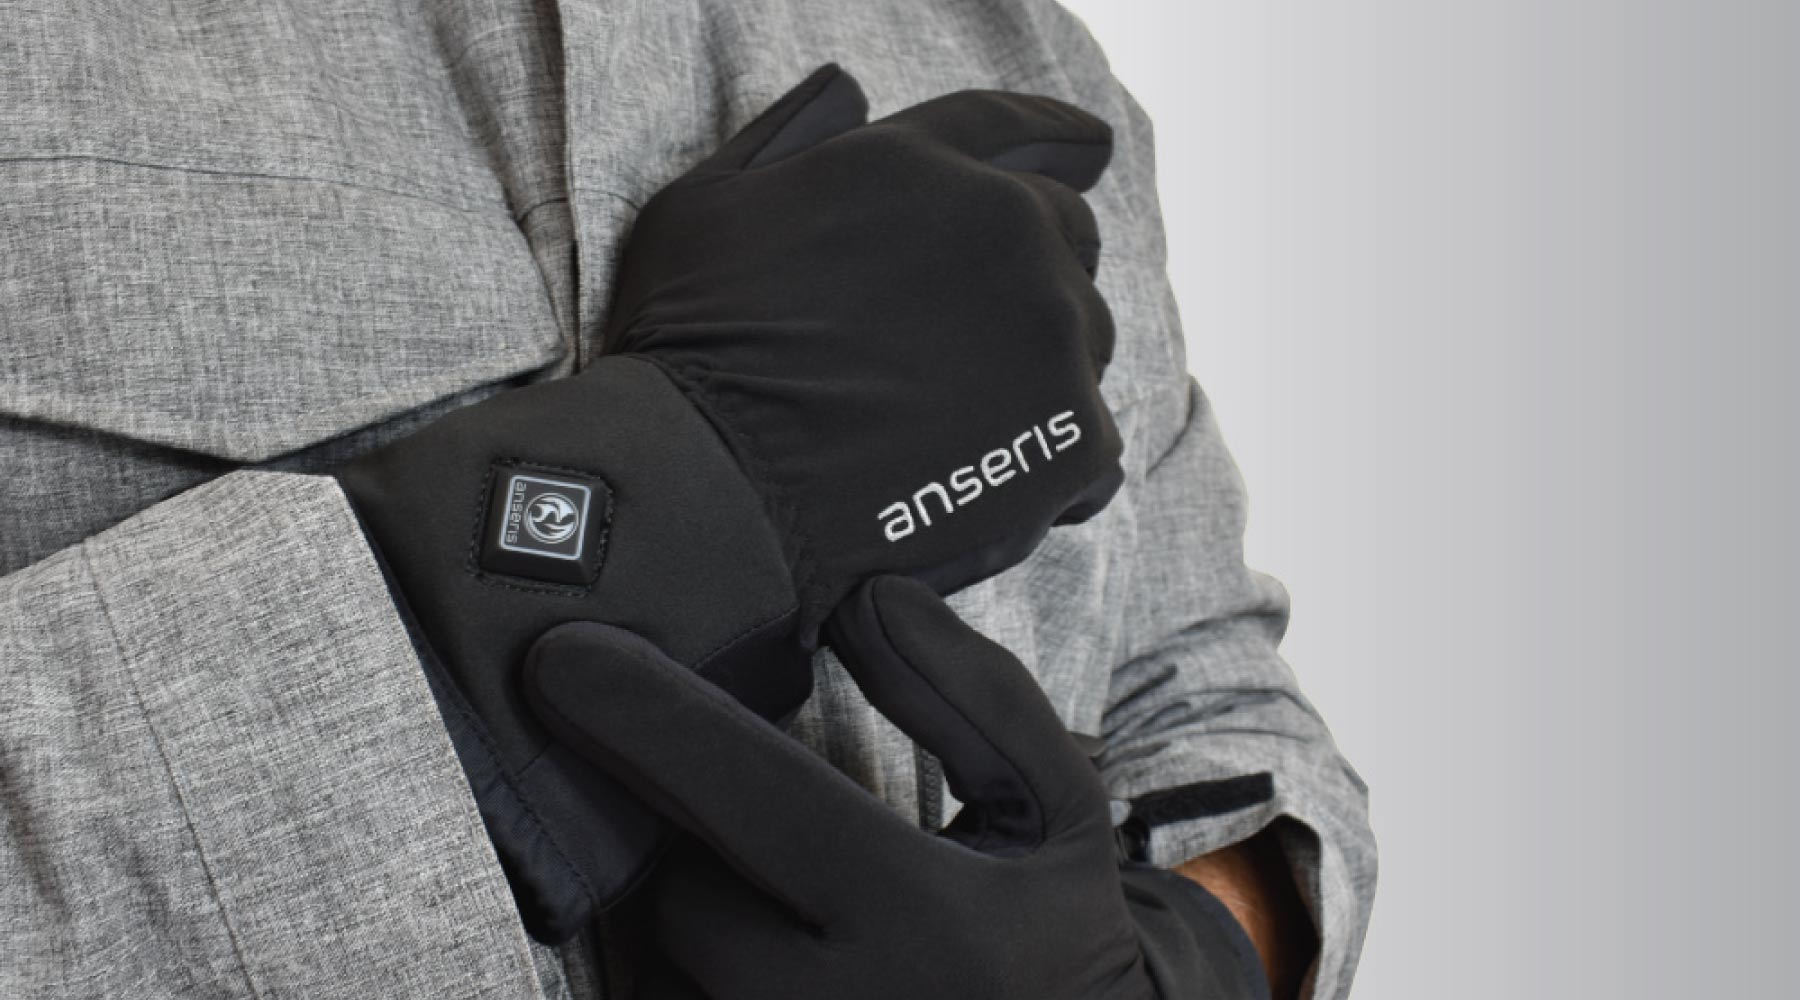 battery powered heated glove liners by anseris feature easy on and off, with adjustable temperatures and a liner style that can be worn under any other glove or mitten outer shell